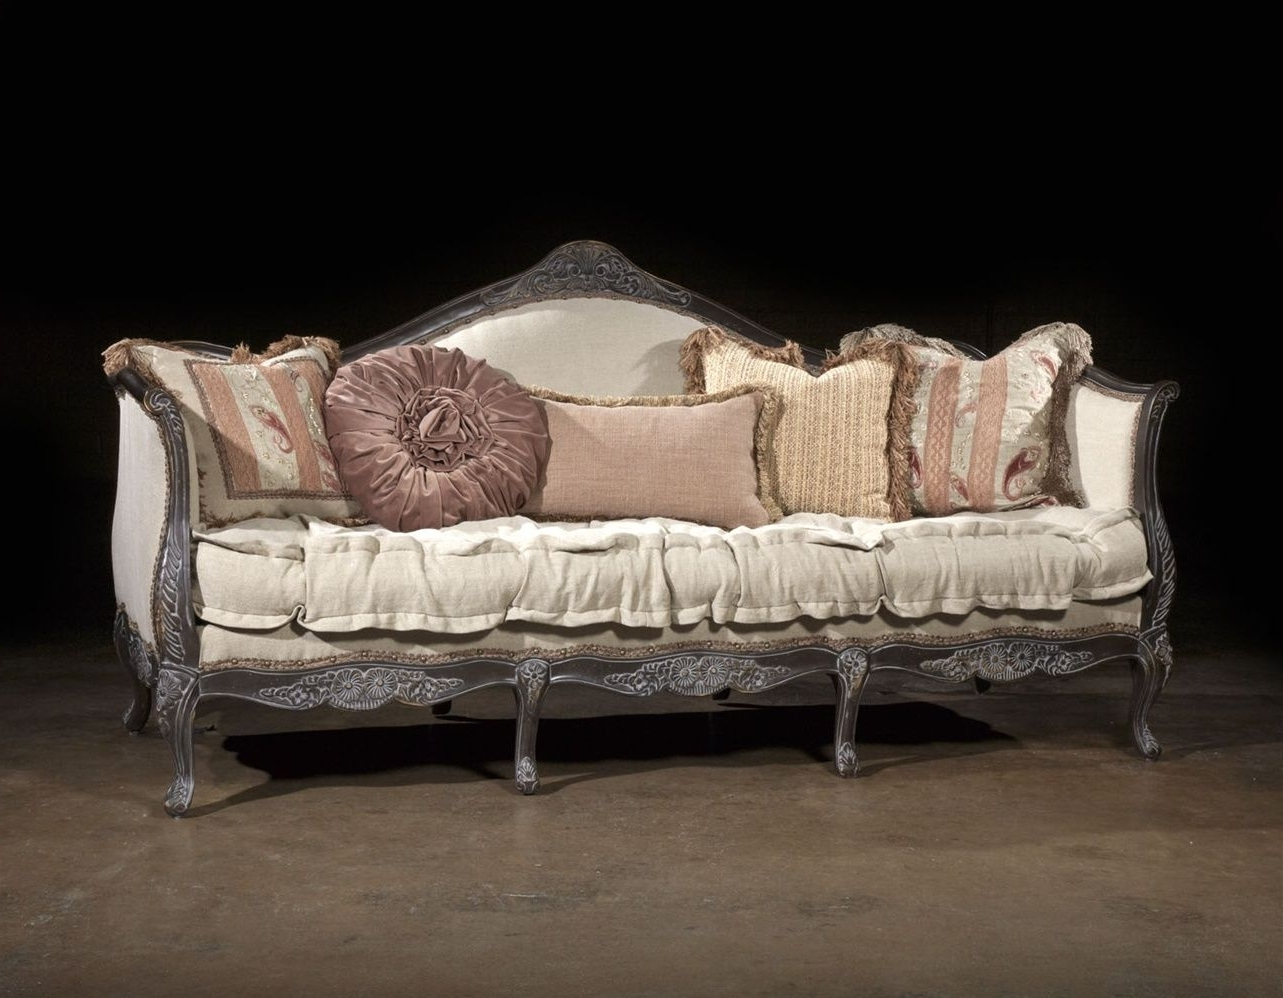 2018 French Style Sofas Within Google Image Result For Http://a248.e (View 1 of 20)